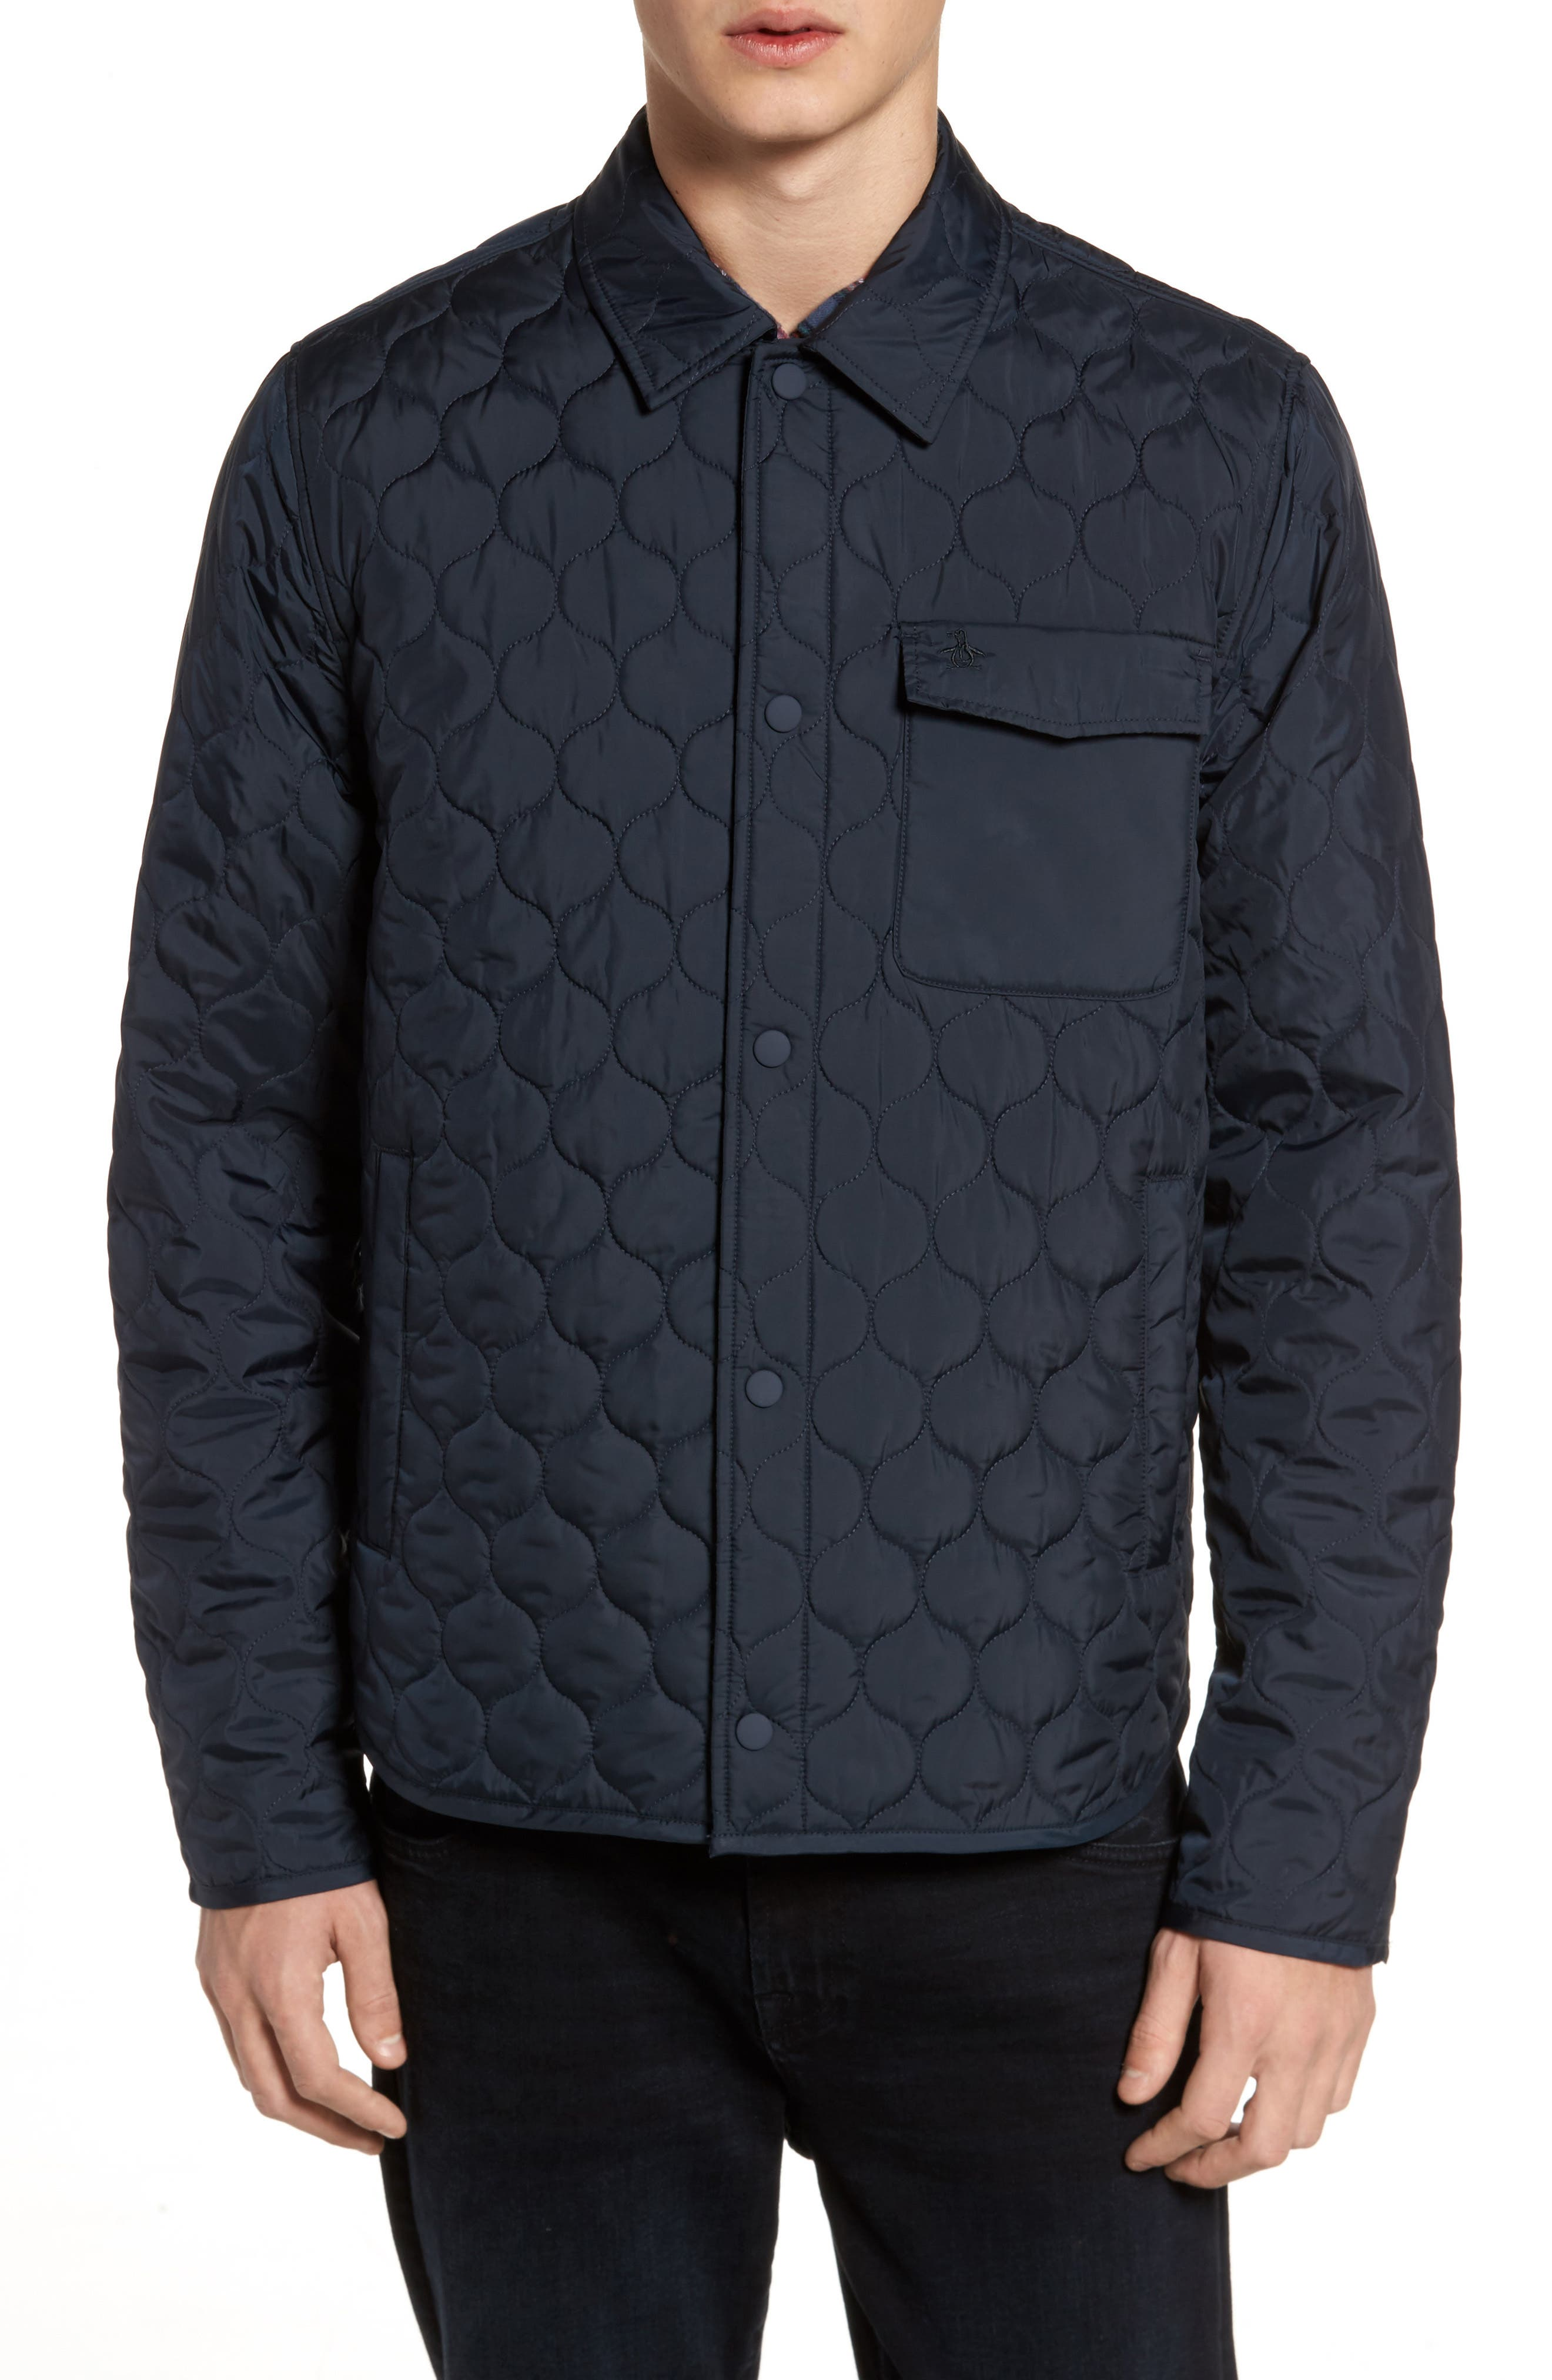 ORIGINAL PENGUIN,                             Lightweight Onion Quilted Jacket,                             Alternate thumbnail 4, color,                             413